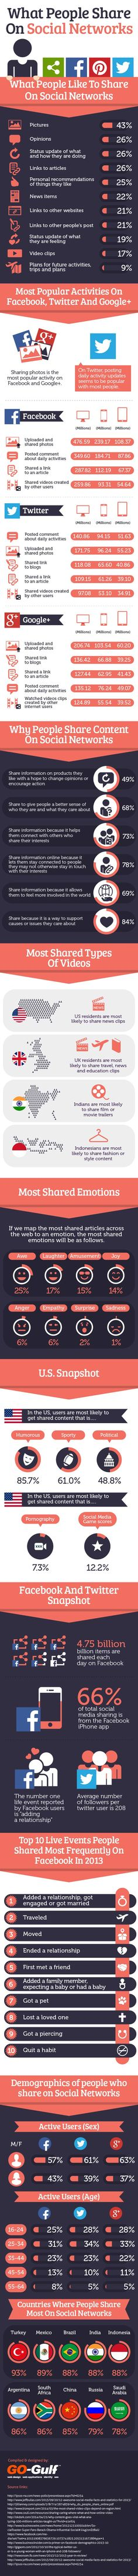 What (And Why) Do People Share On Social Networks?